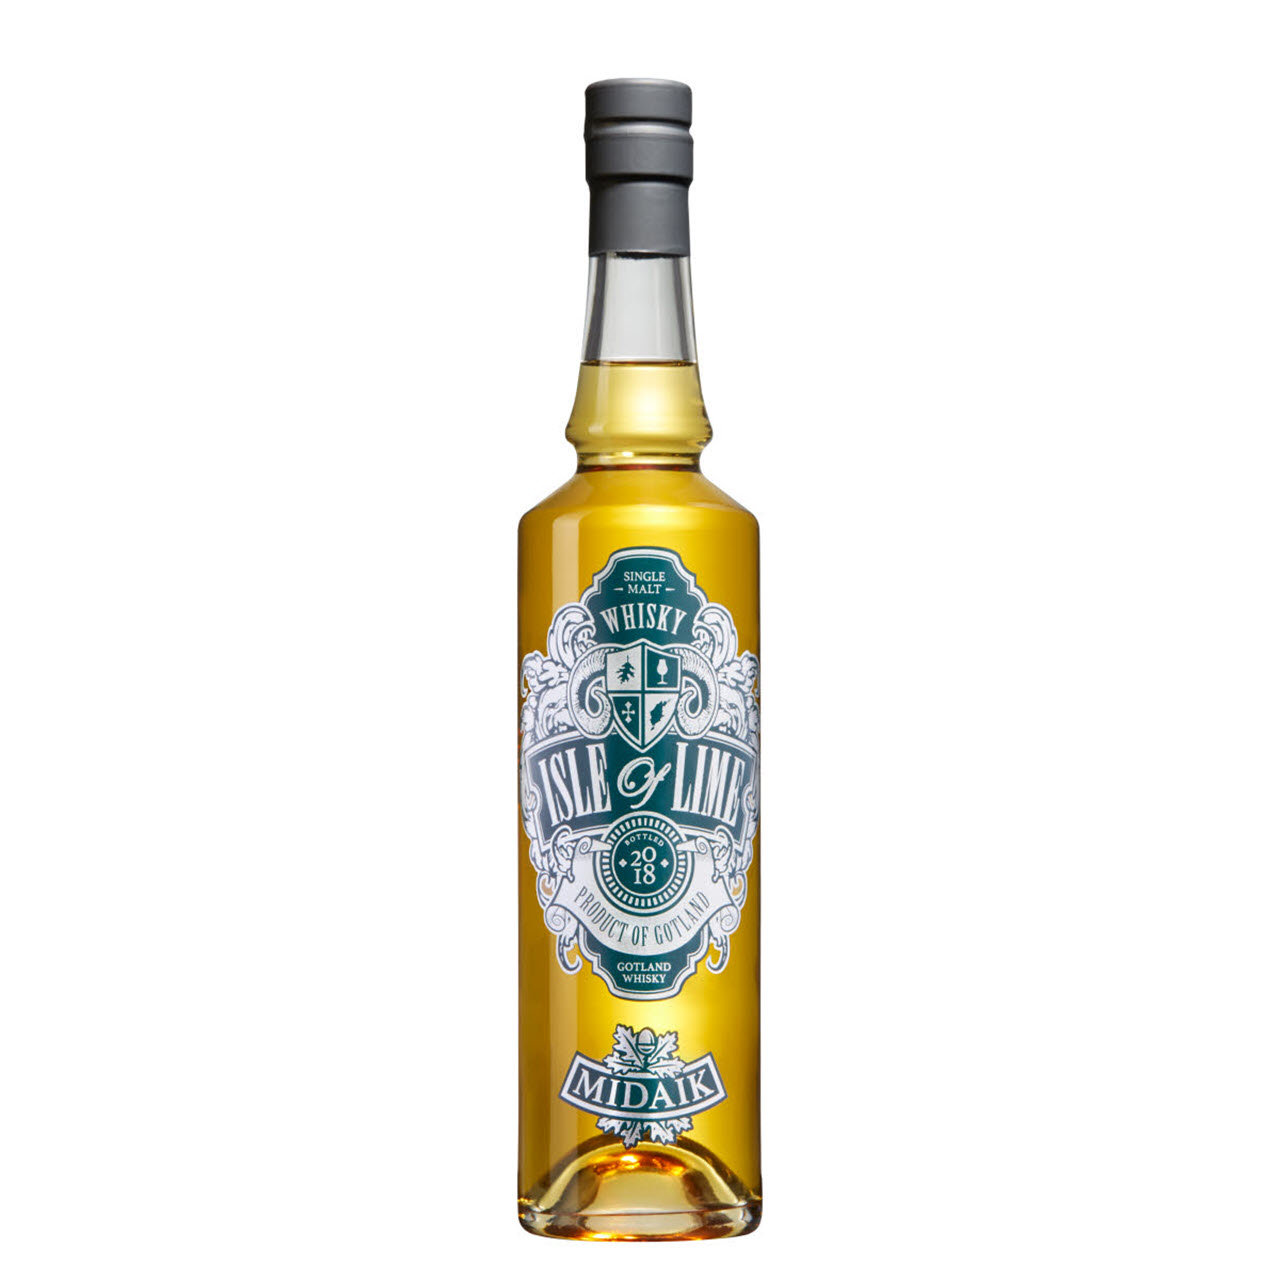 Nordic Whisky #198 - Isle of Lime Midaik